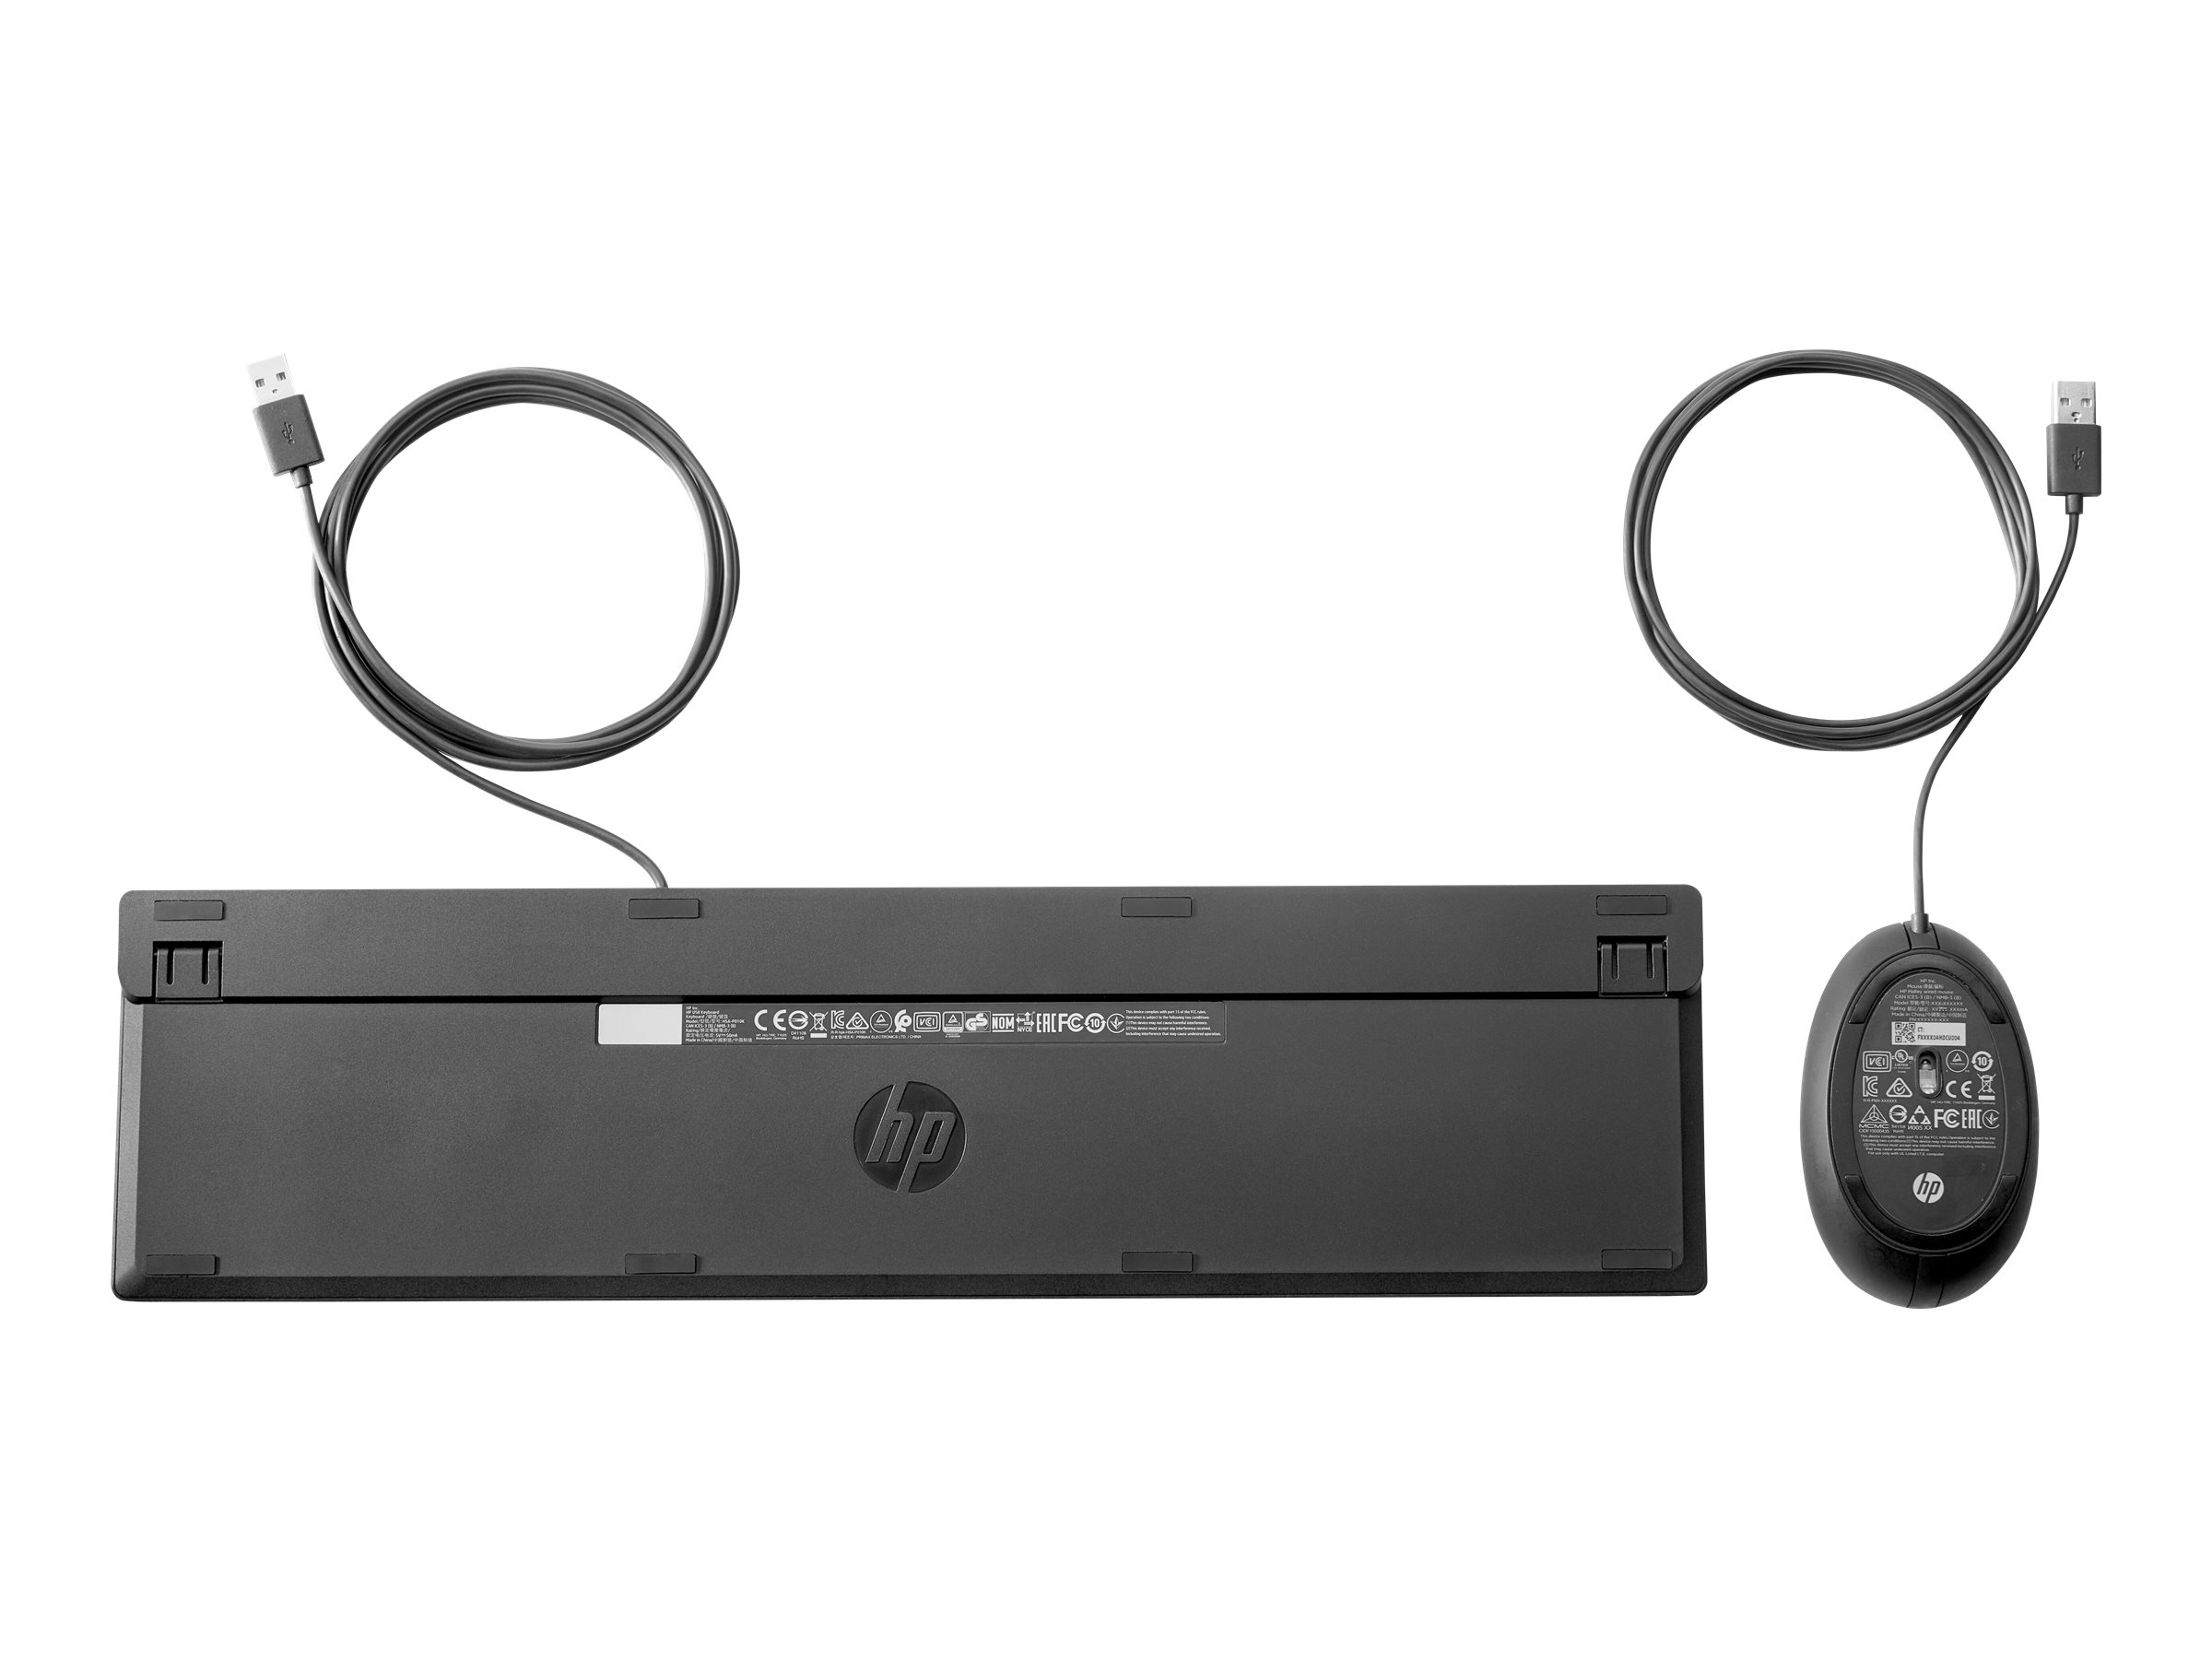 HP Desktop 320MK - keyboard and mouse set - US - Smart Buy